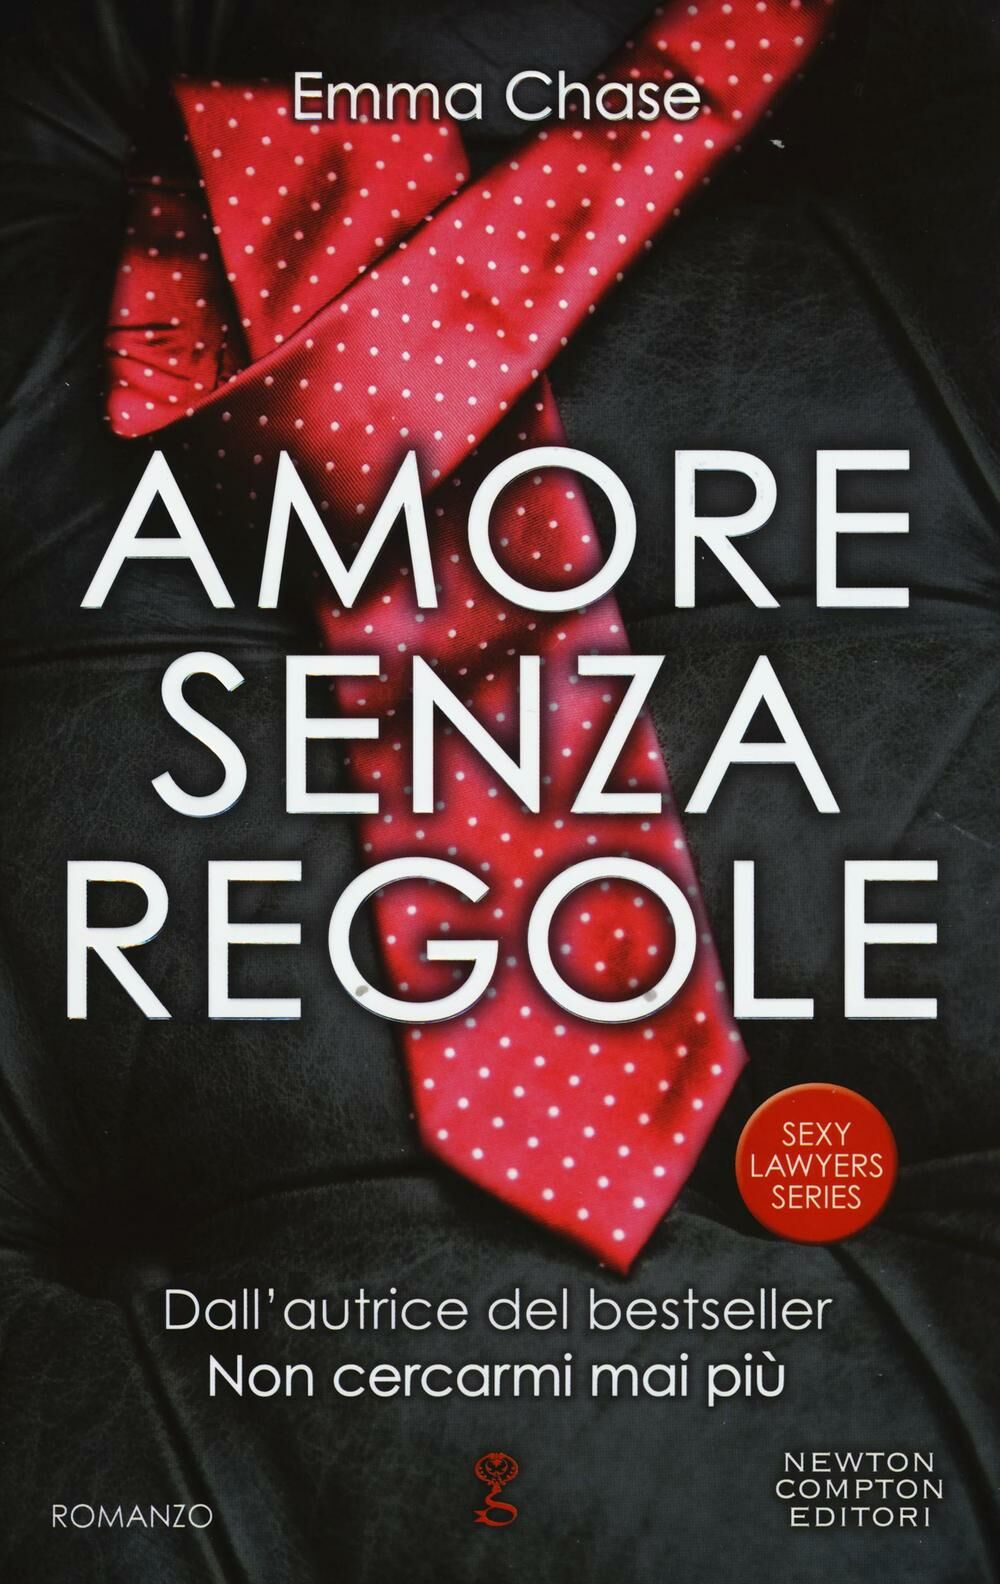 Amore senza regole. Sexy lawyers series